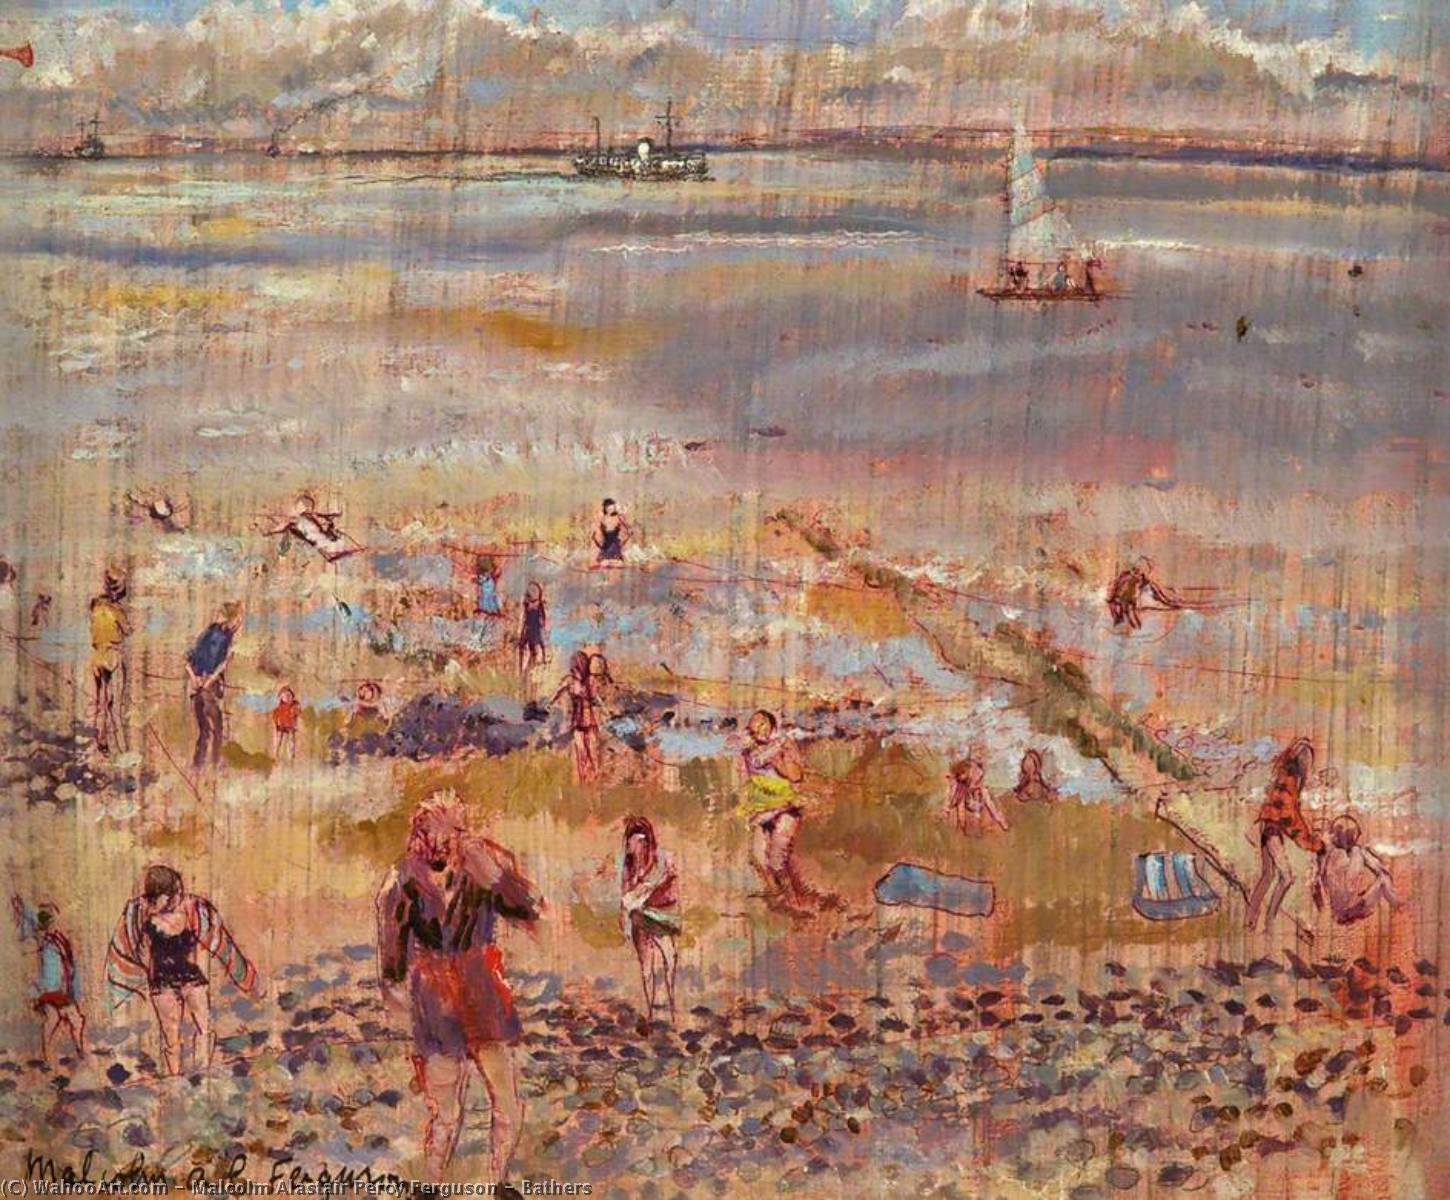 Wikioo.org - The Encyclopedia of Fine Arts - Painting, Artwork by Malcolm Alastair Percy Ferguson - Bathers